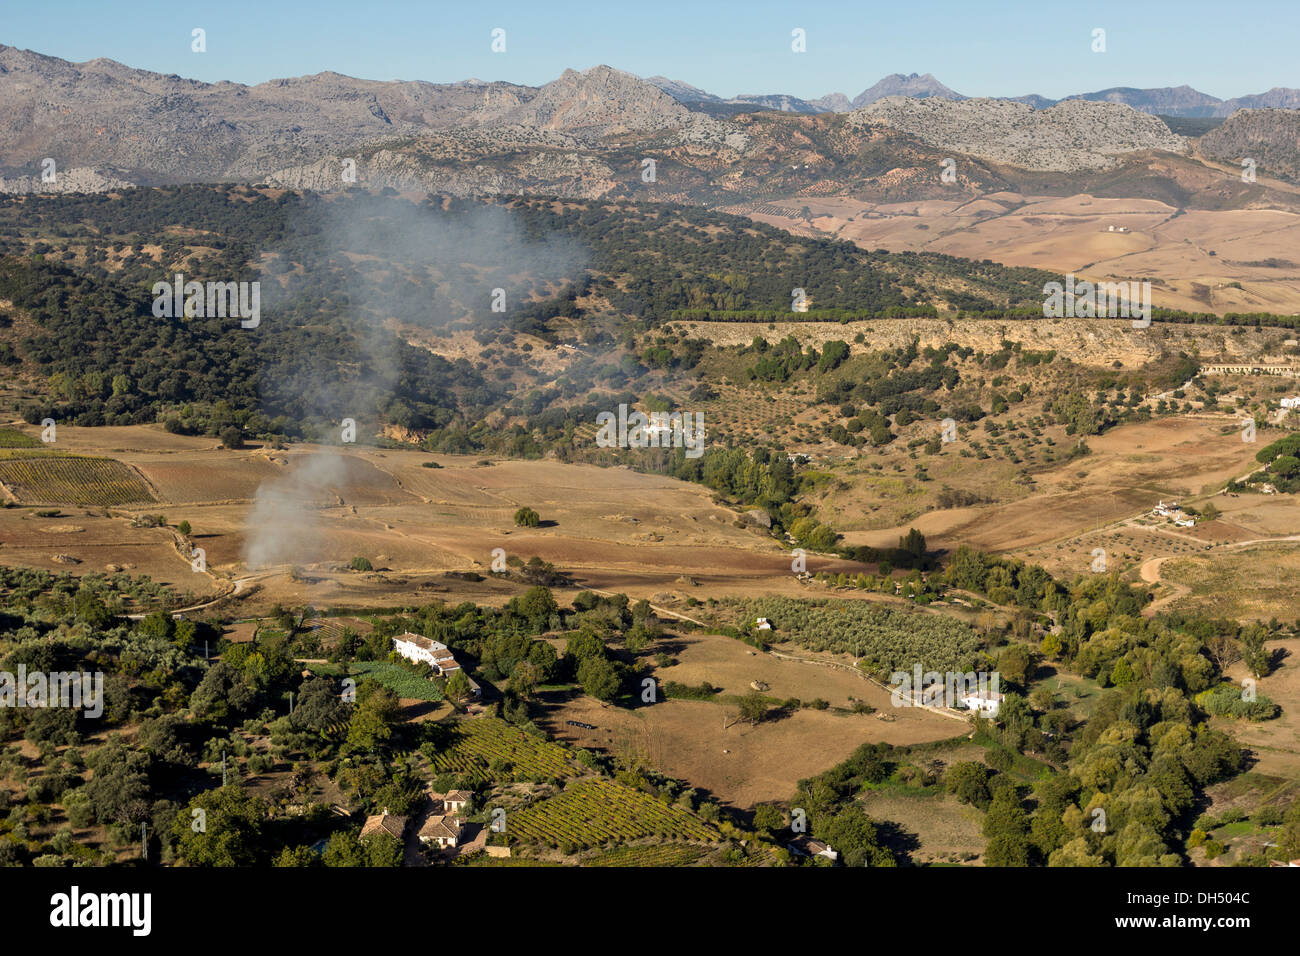 AGRICULTURE IN SPAIN NEAR RONDA ANDALUCIA WITH THE SERRANIA DE RONDA MOUNTAINS IN THE BACKGROUND - Stock Image